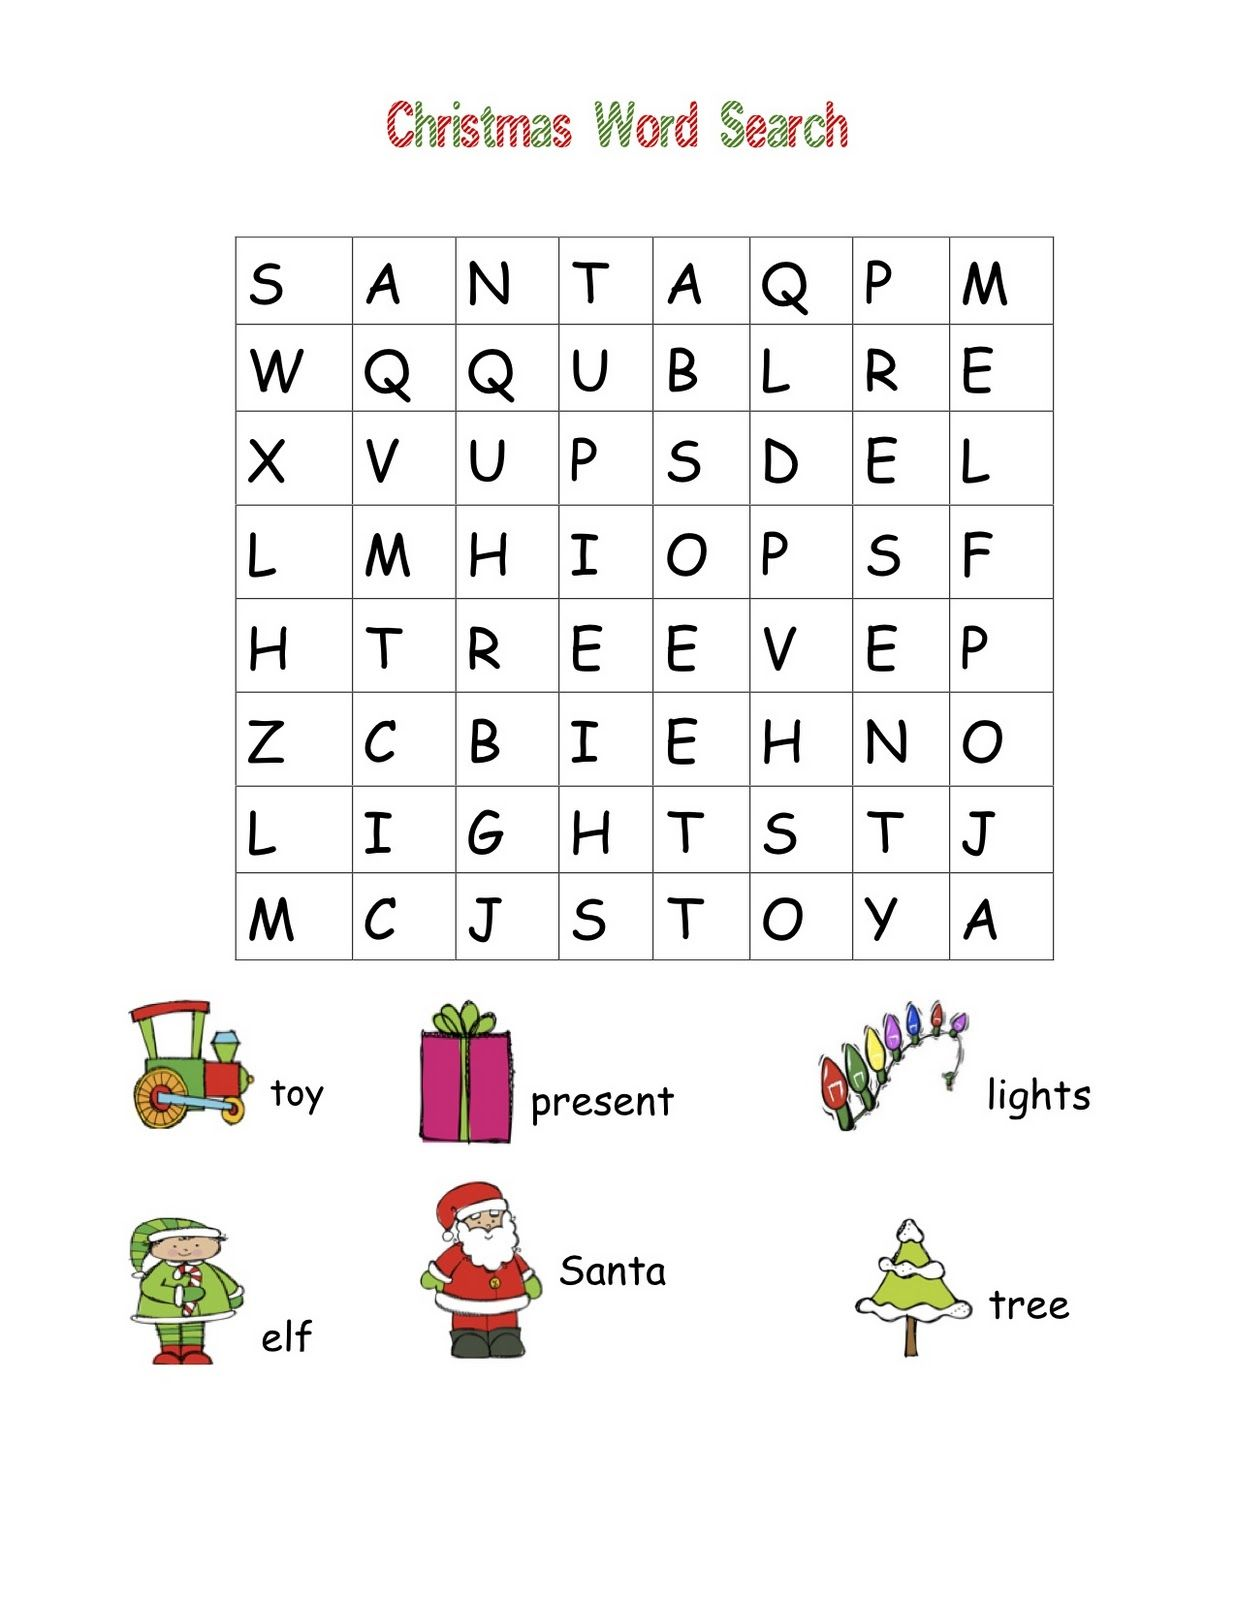 easy for kids word search christmas